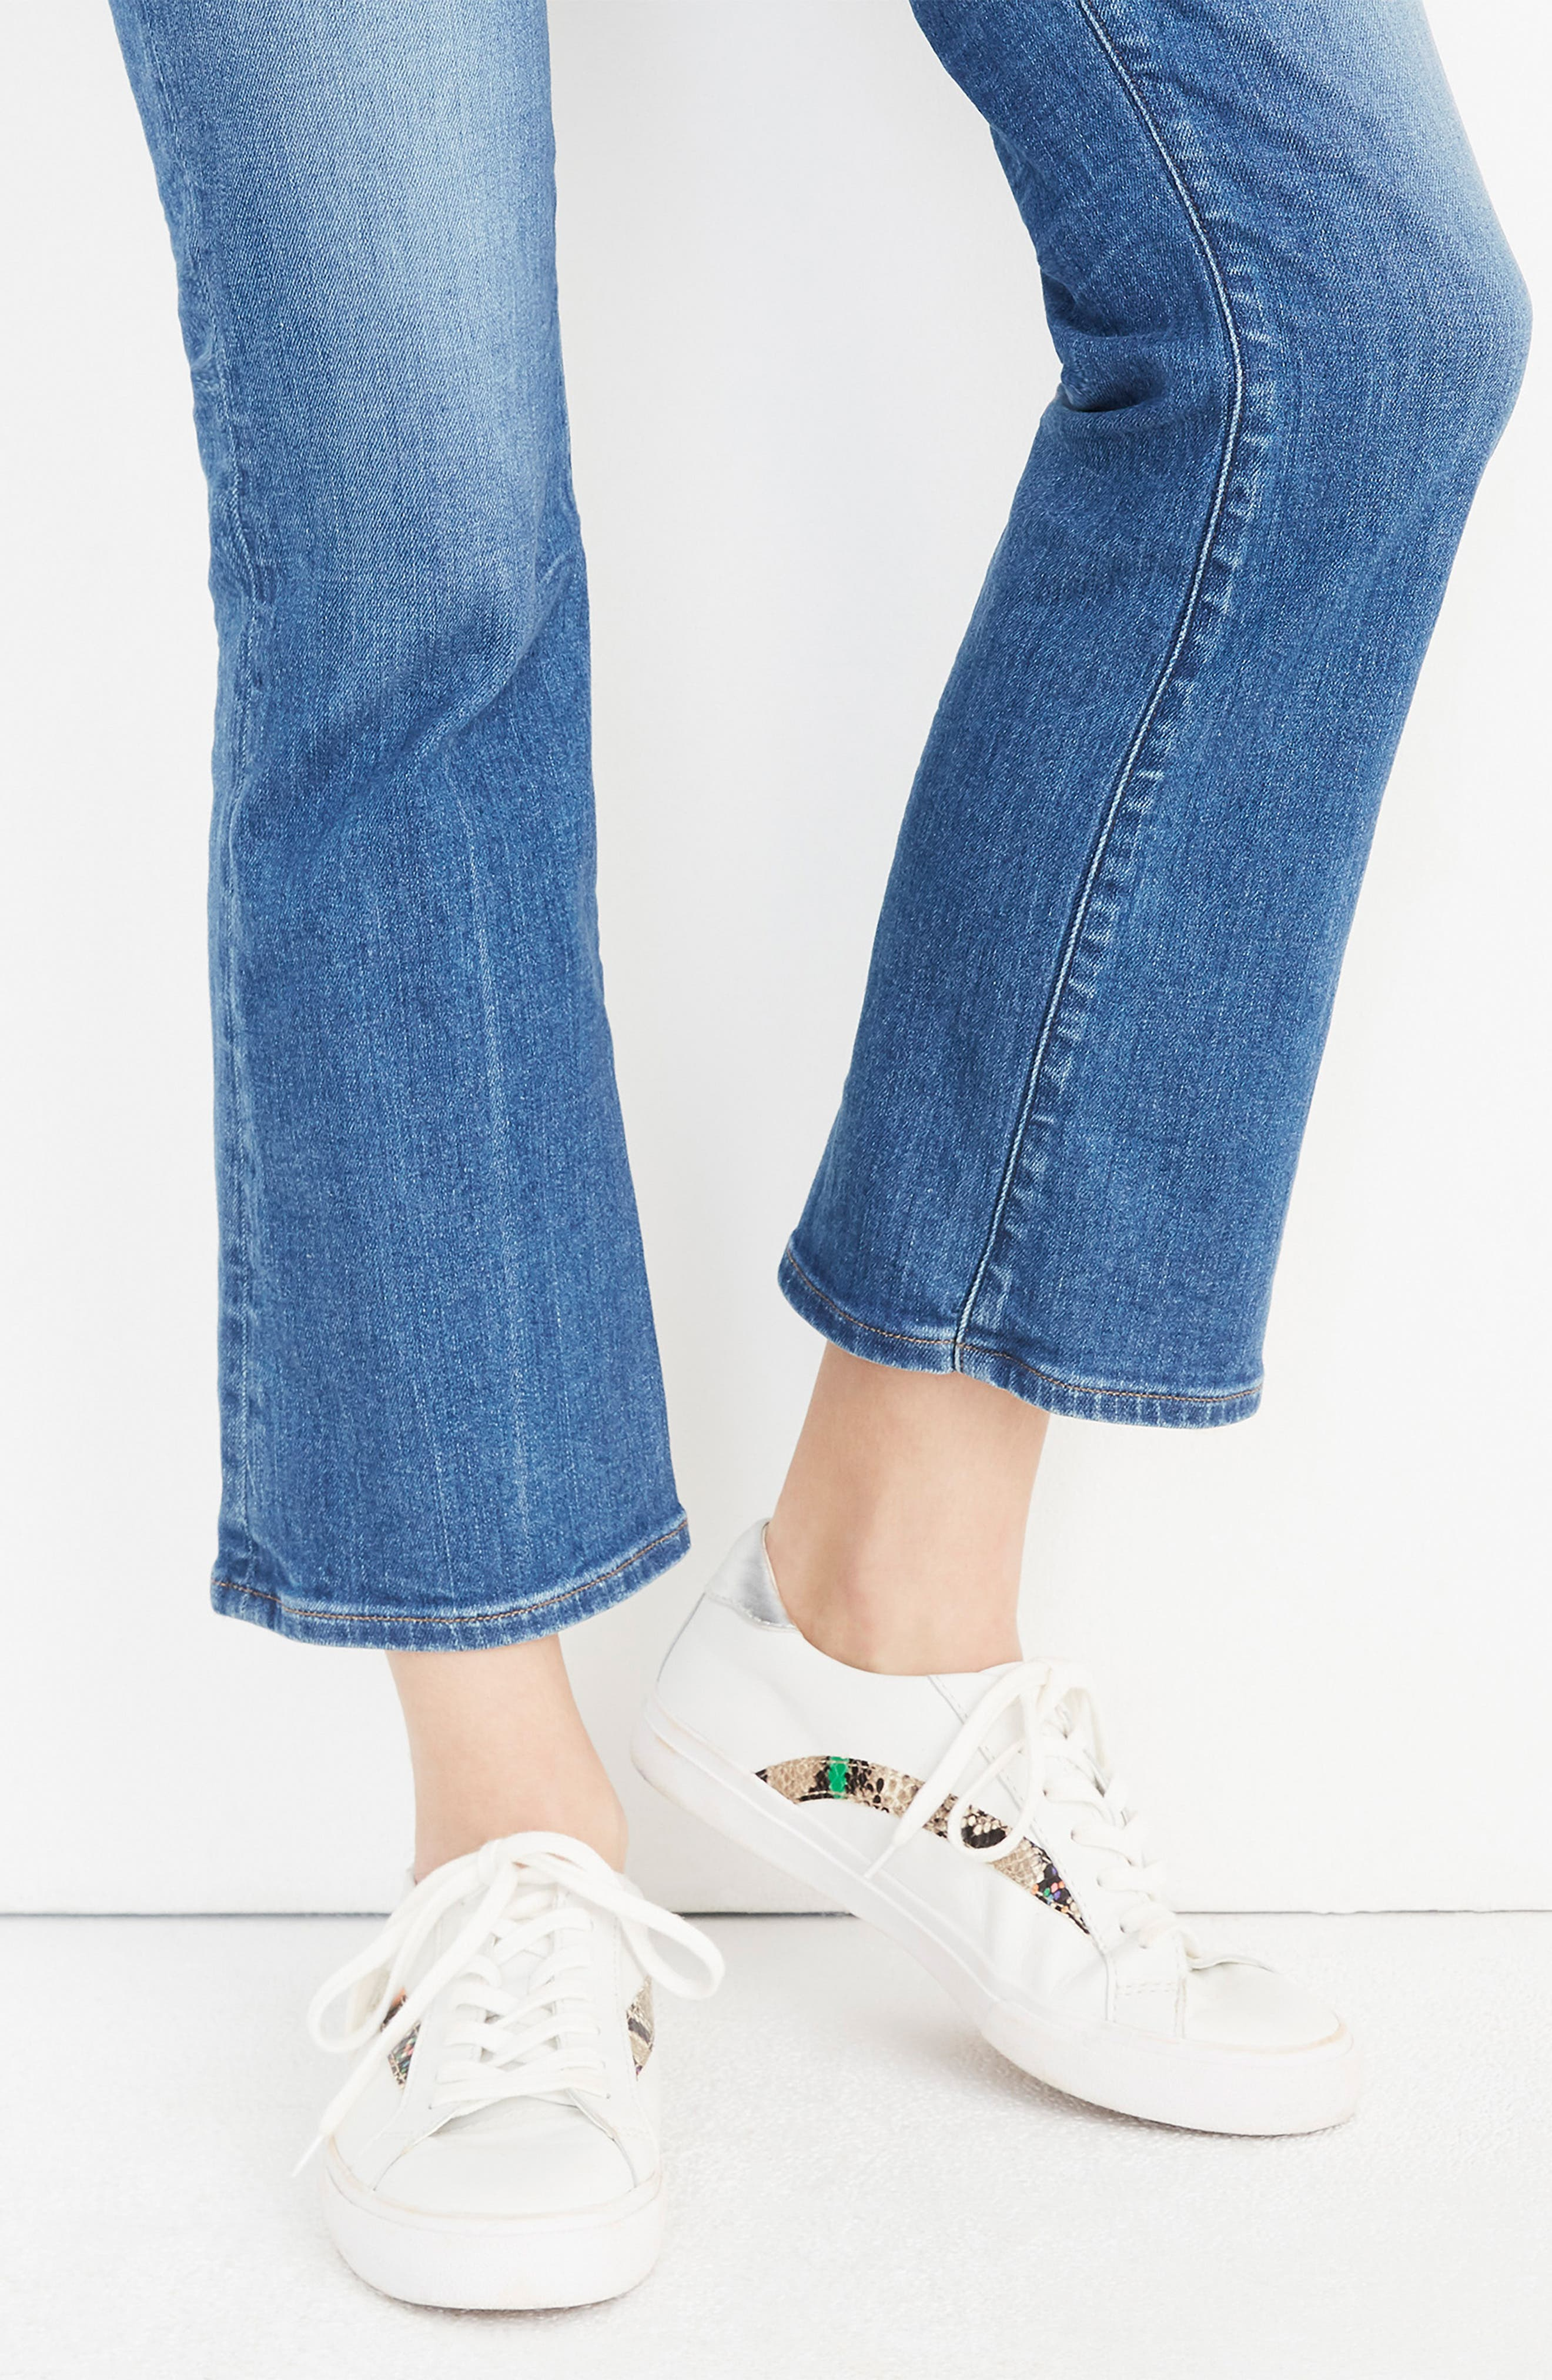 MADEWELL, Delia Sneaker, Alternate thumbnail 2, color, LIGHT UMBER MULTI